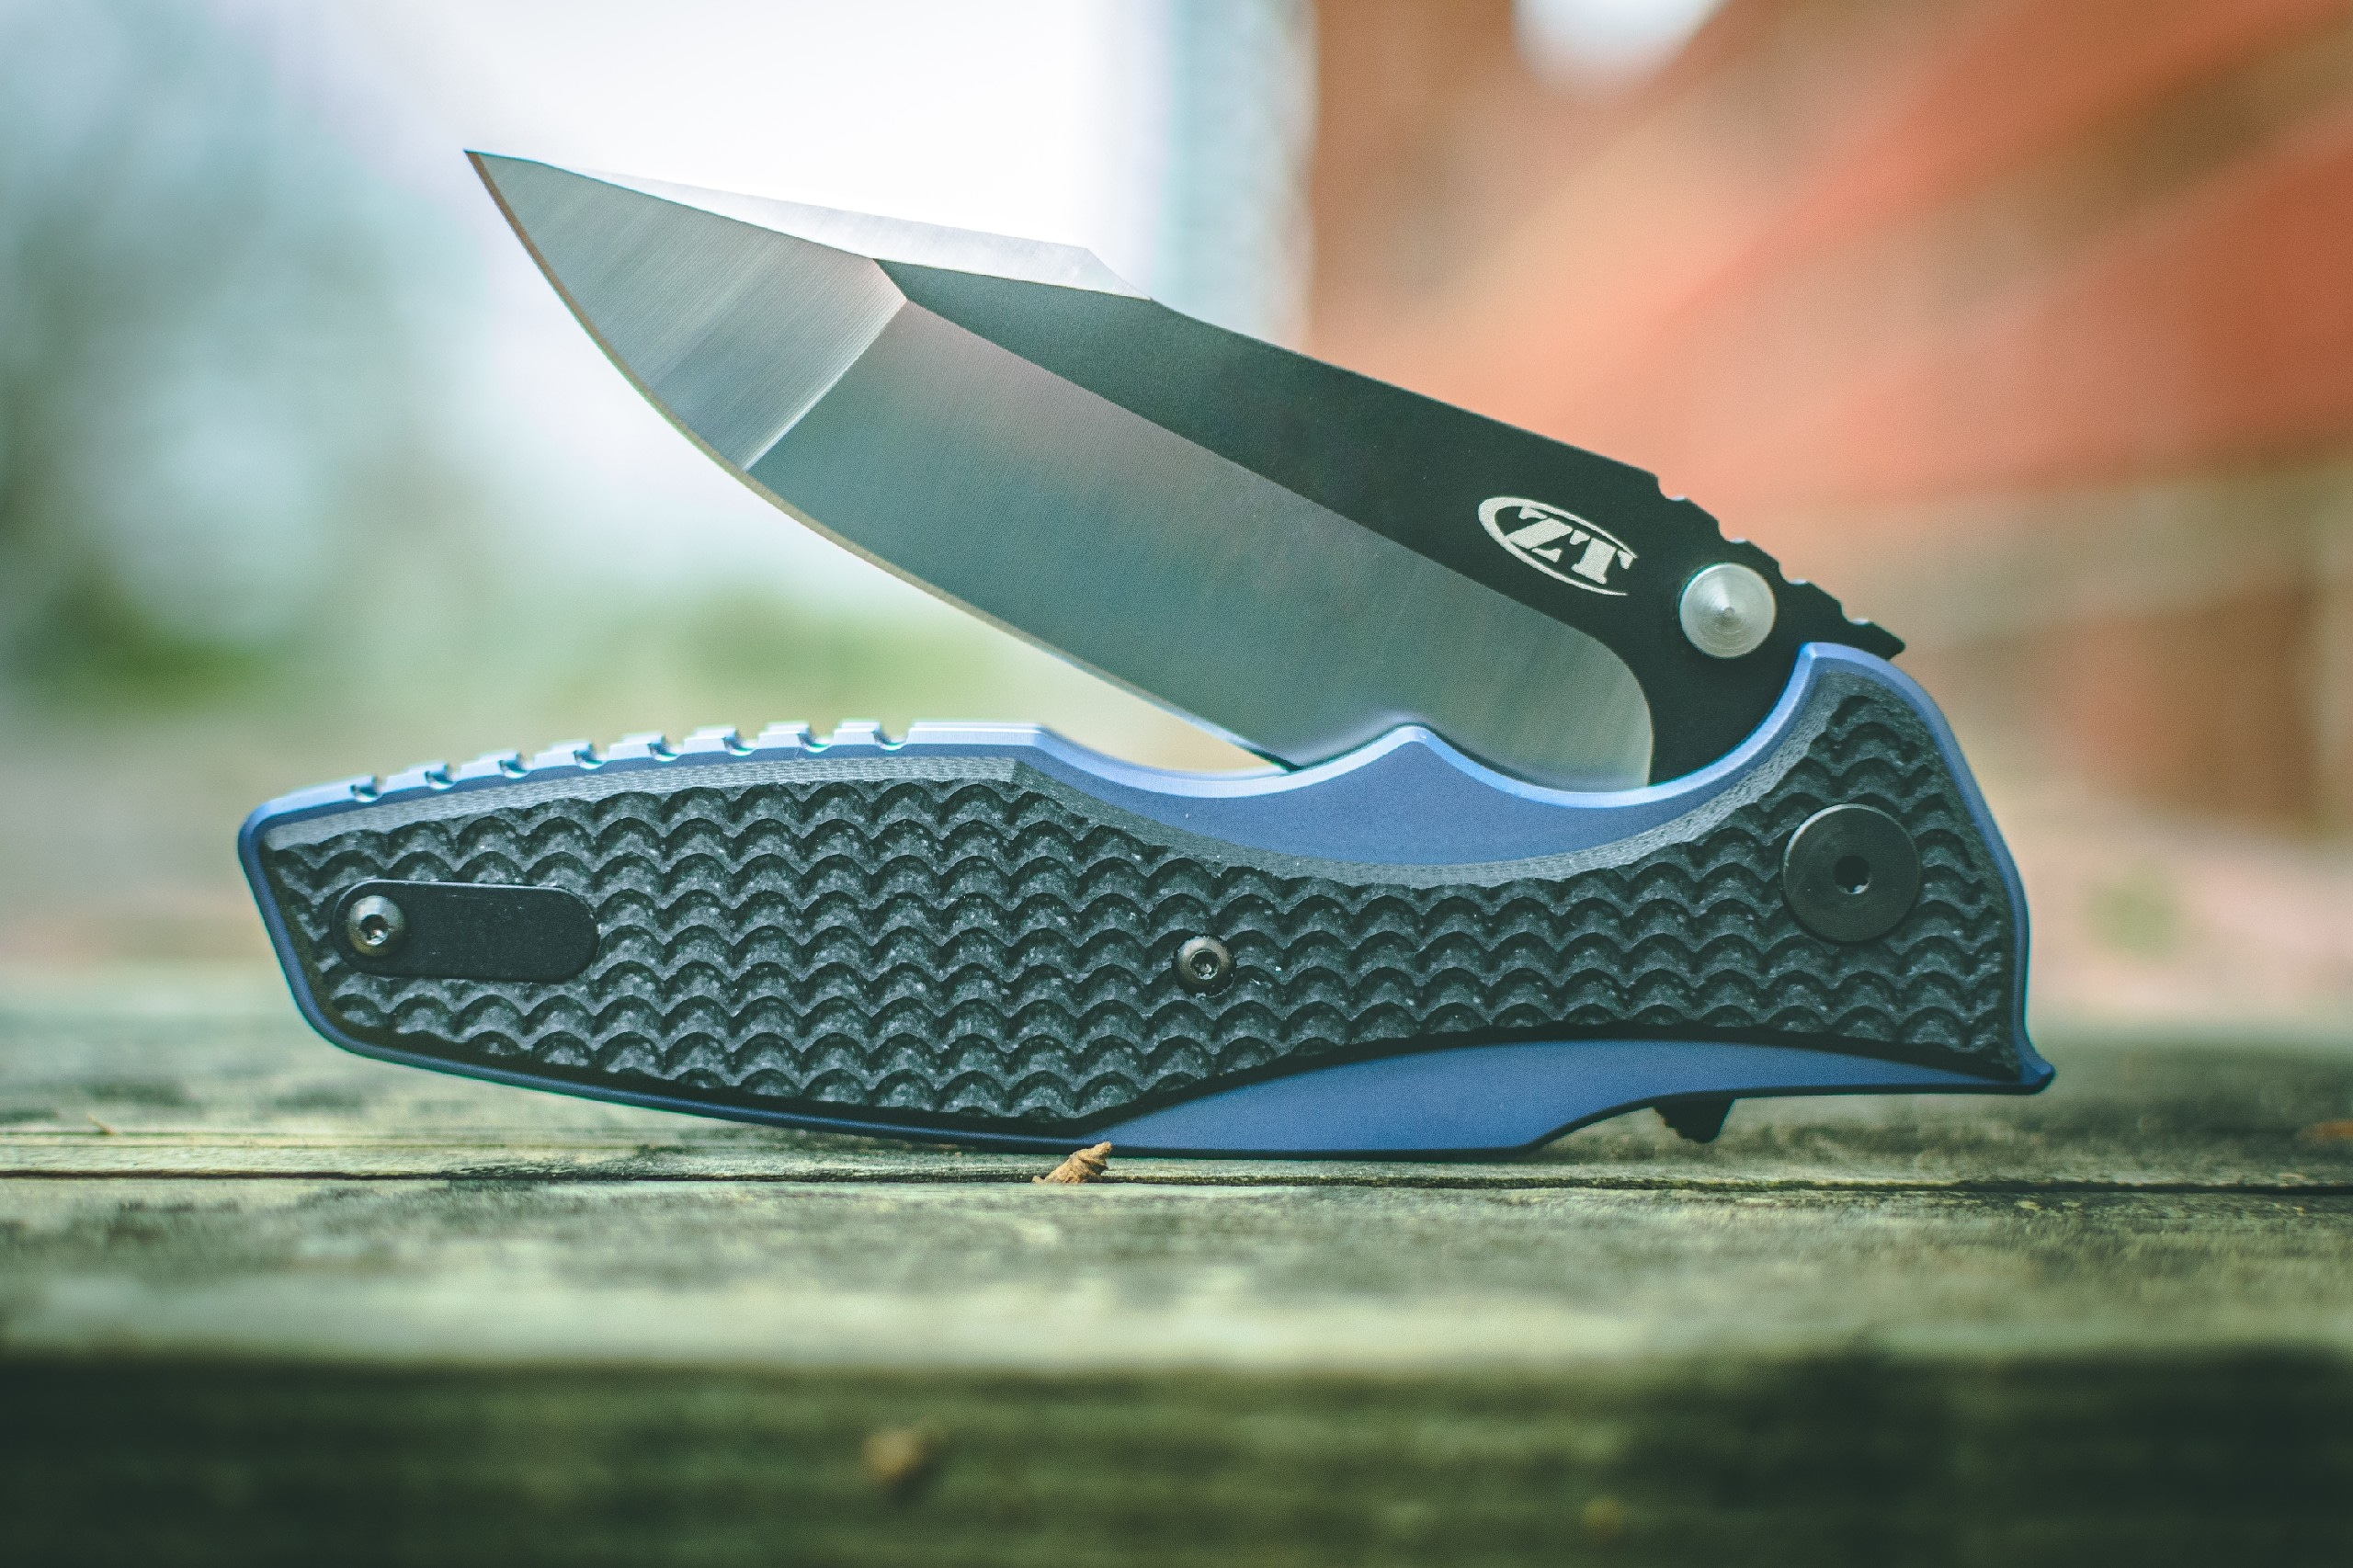 New Arrivals Archives - Edgeworks Knife and Supply Co